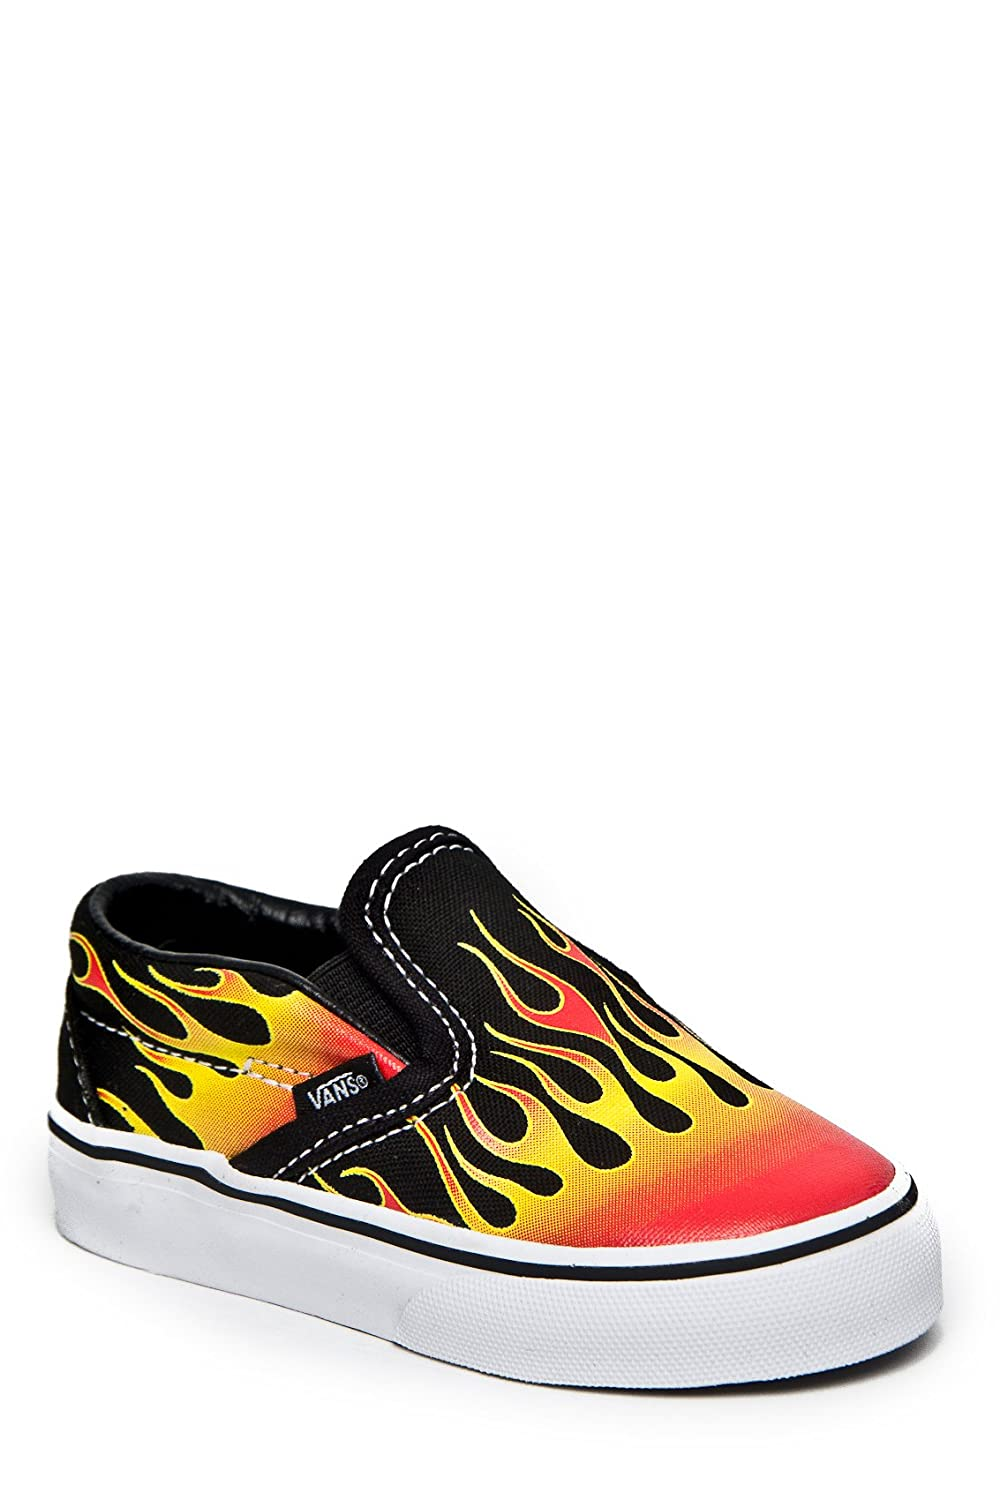 Vans Toddler Classic Slip On, Flame BlackRed 8.5 Toddler